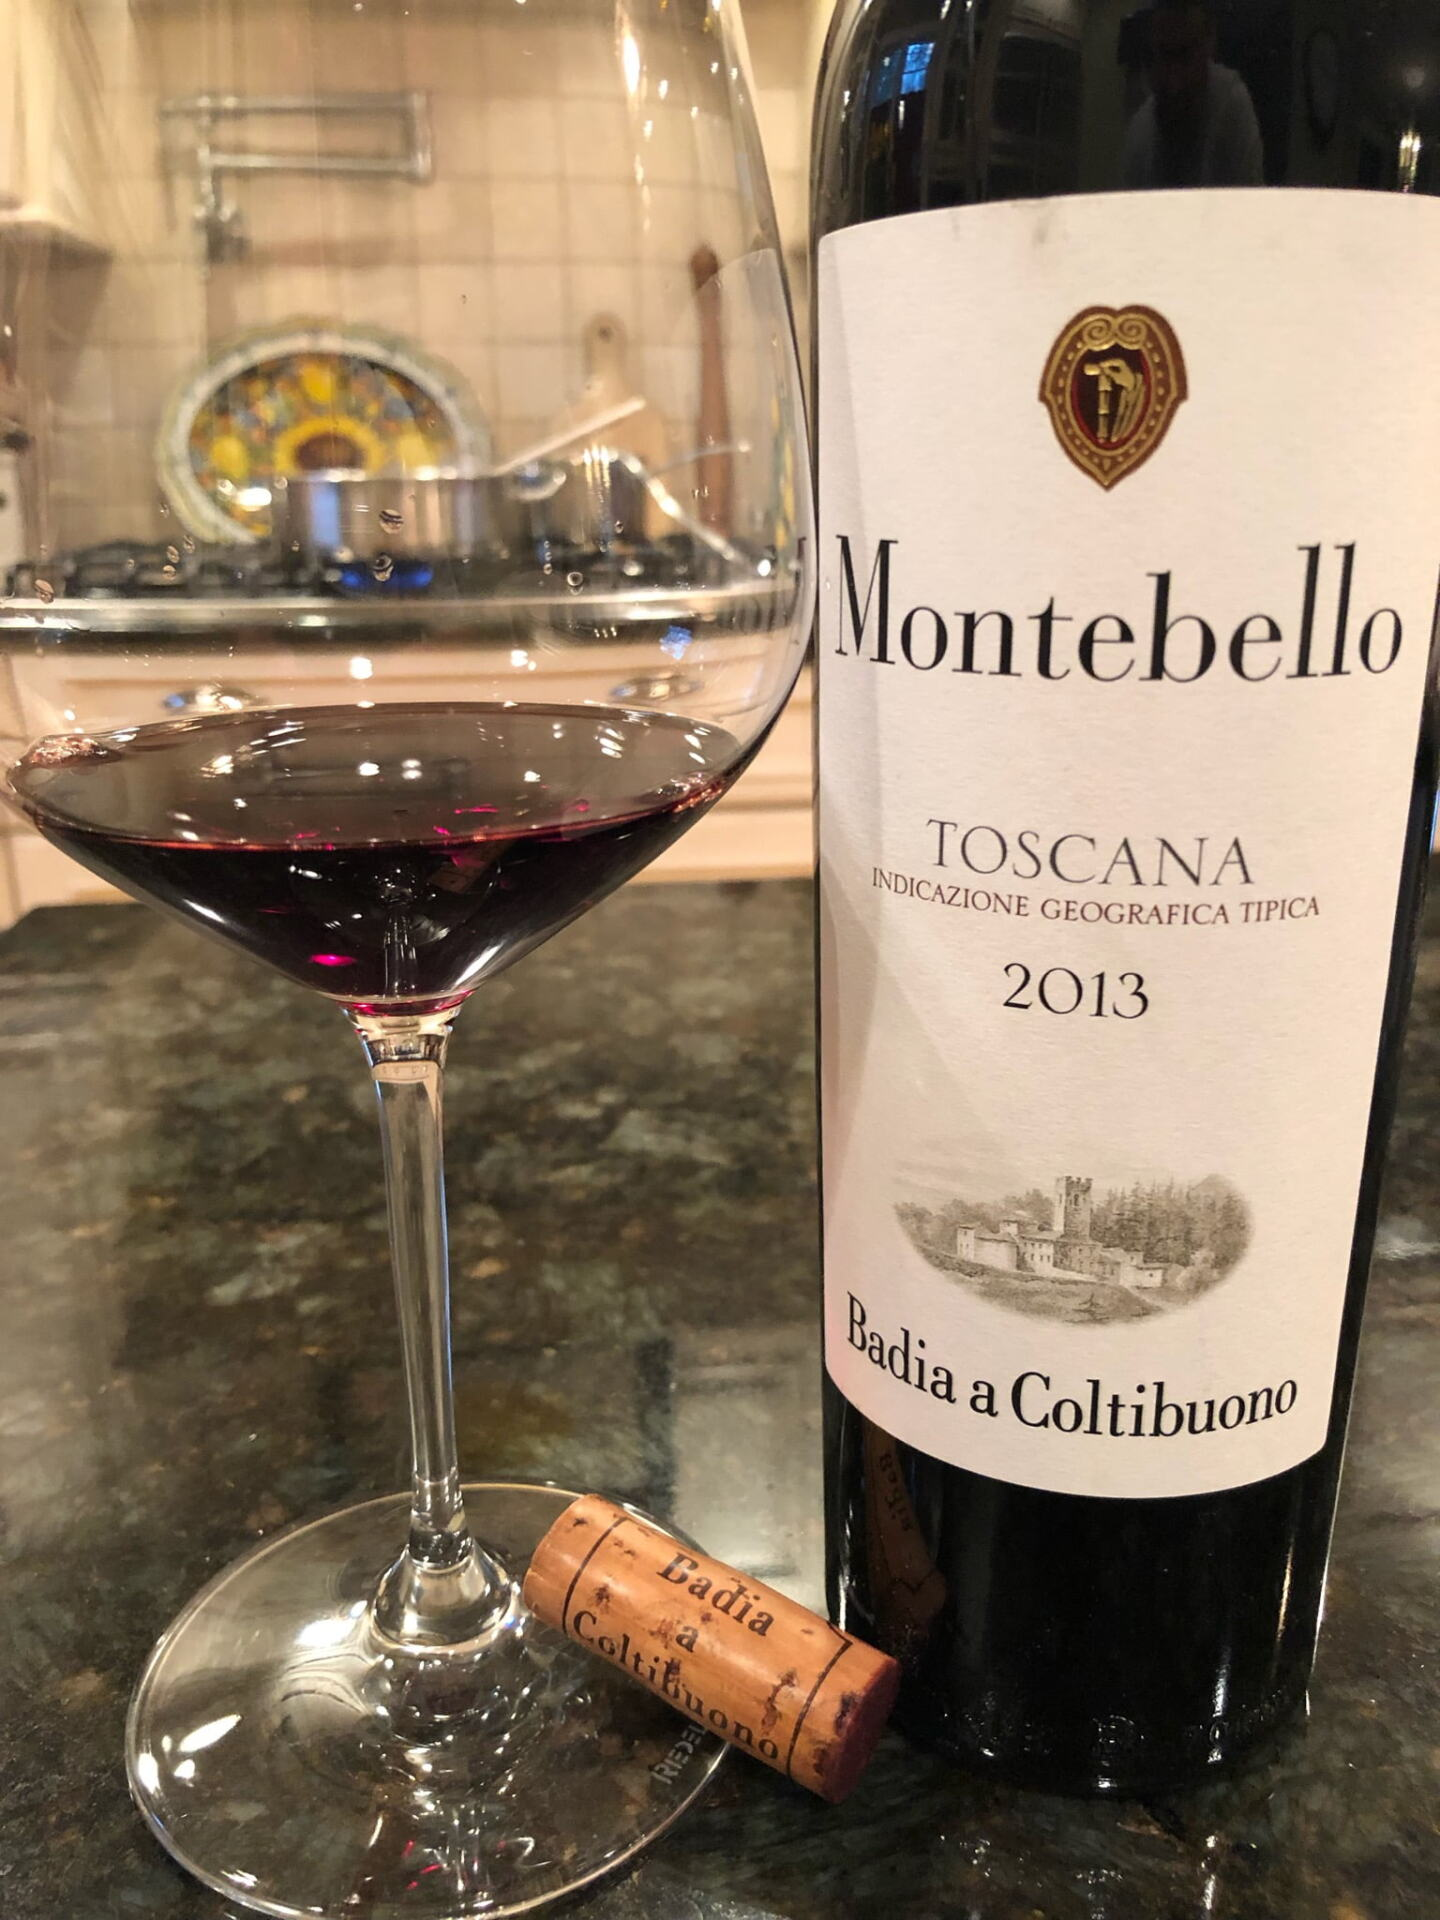 Bottle of wine from Tuscany